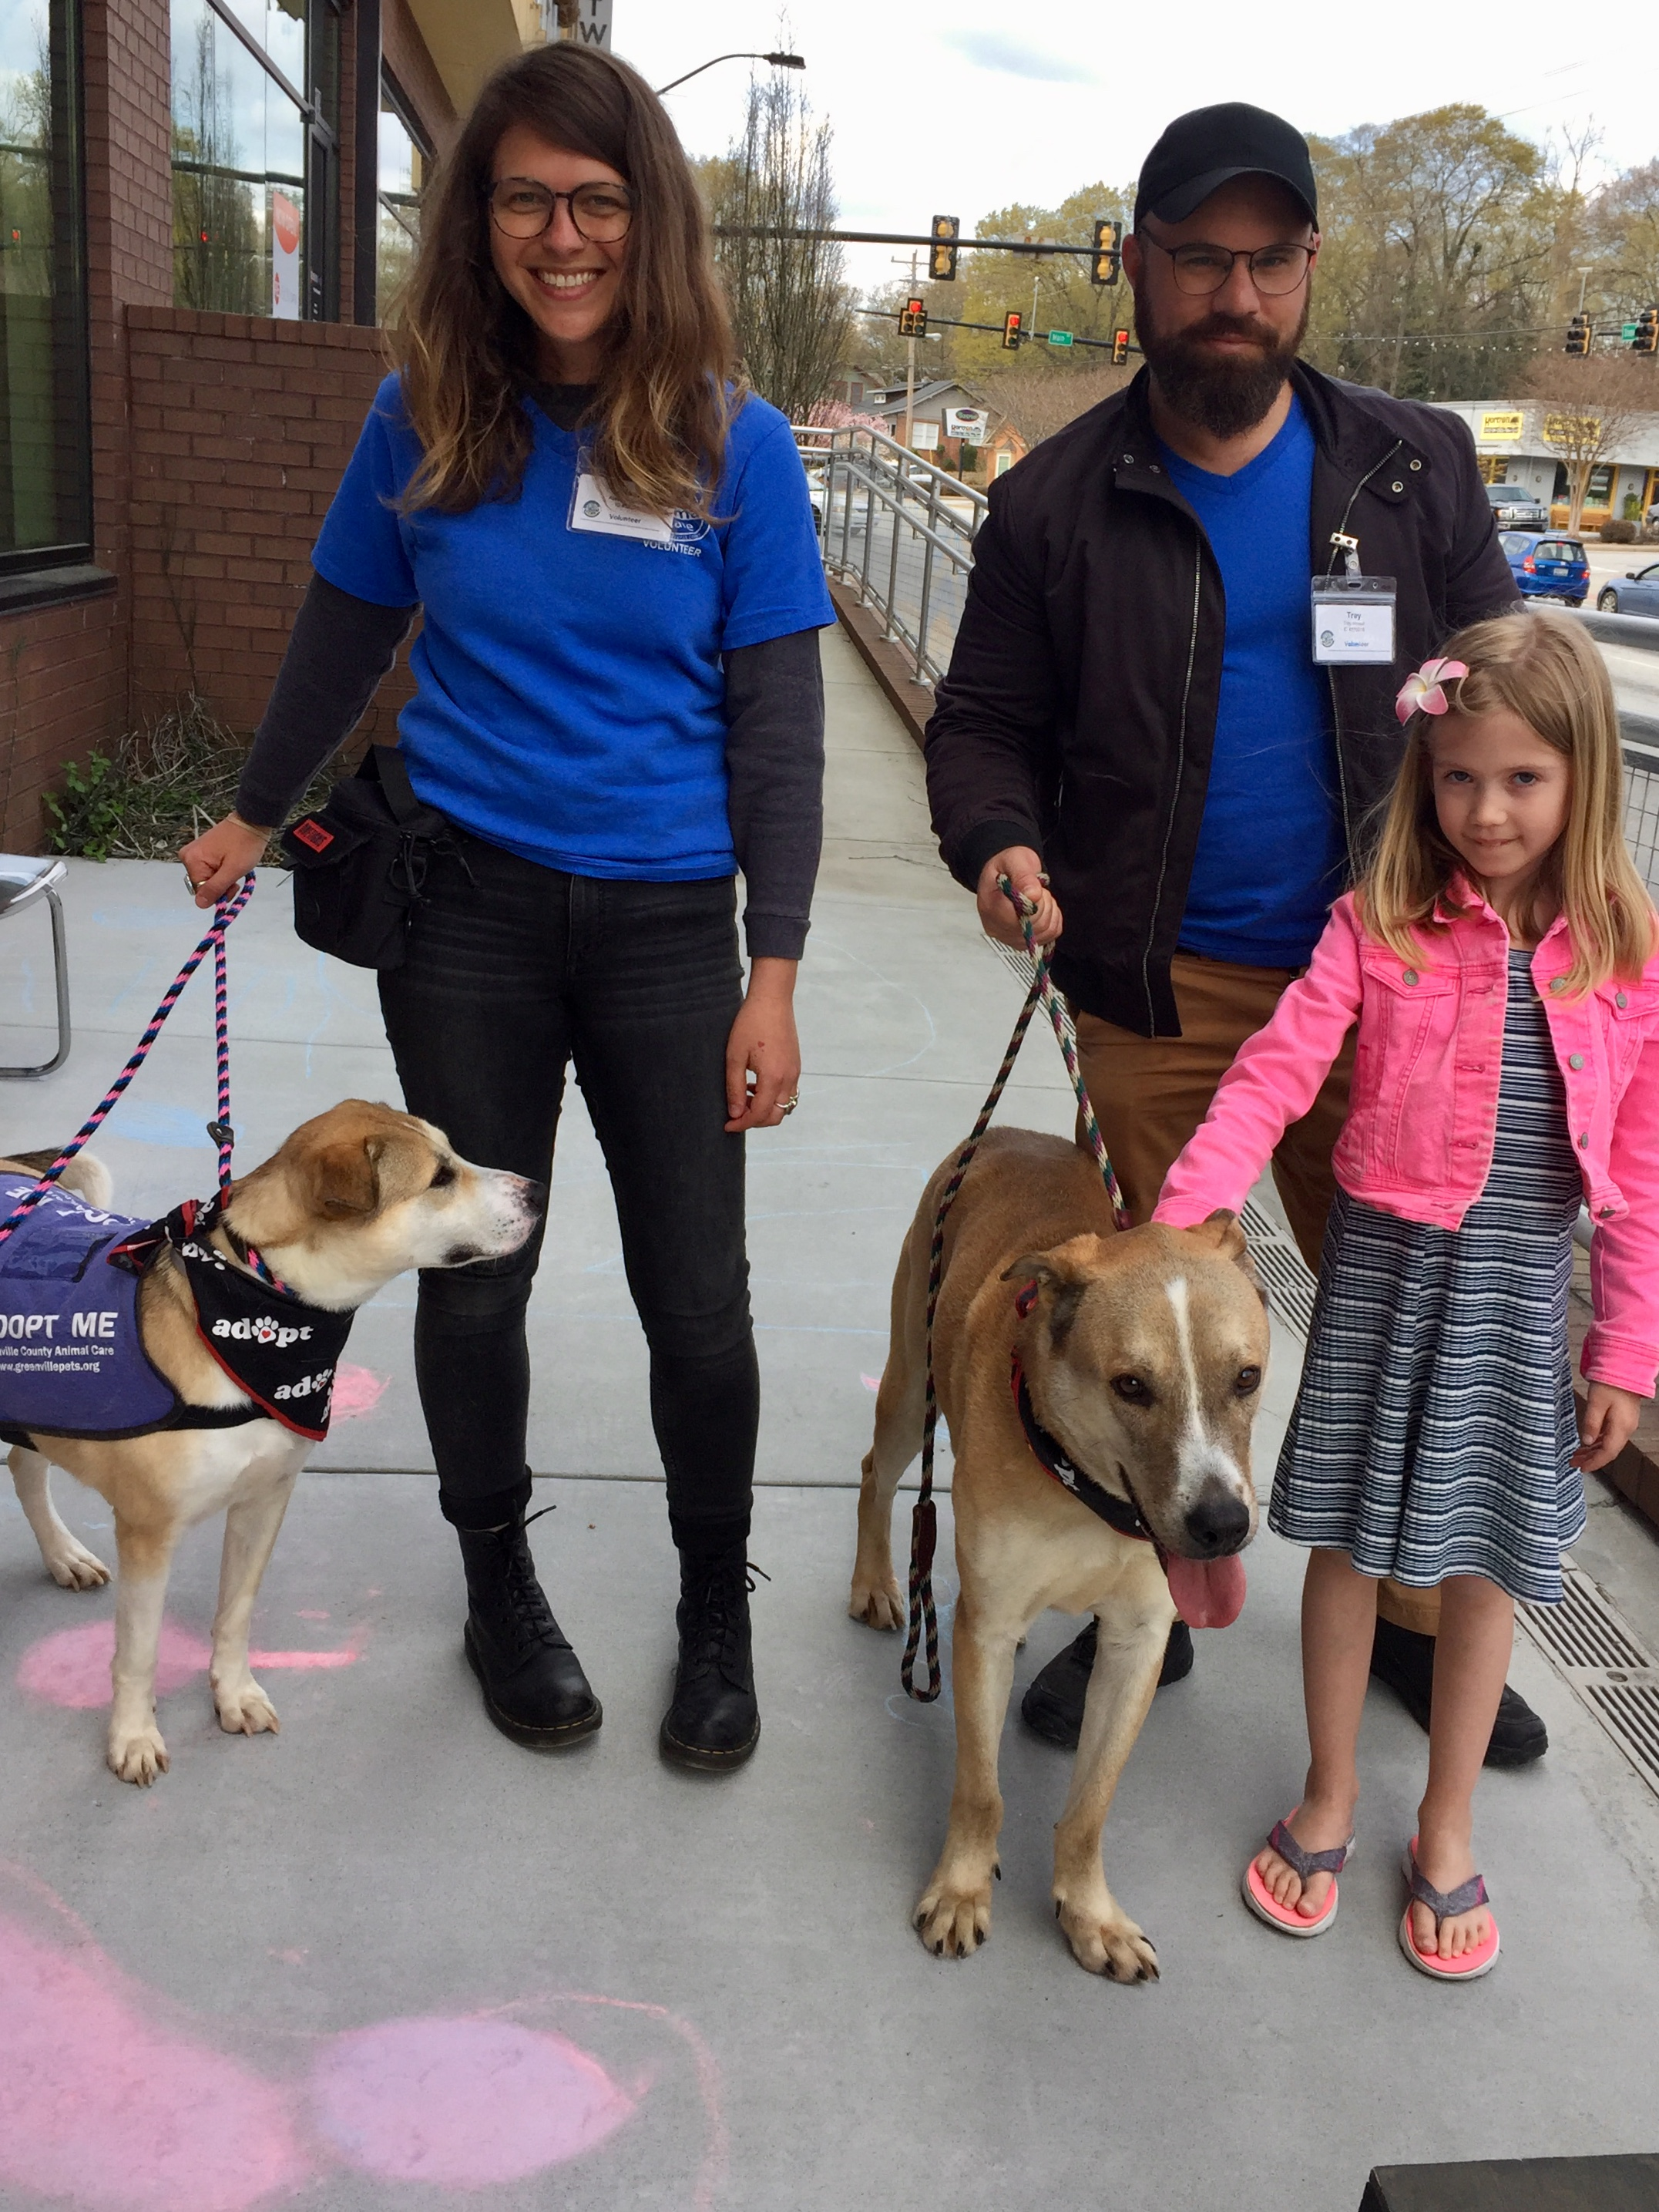 Greenville Animal Care, dogs, adoption, open house, smile